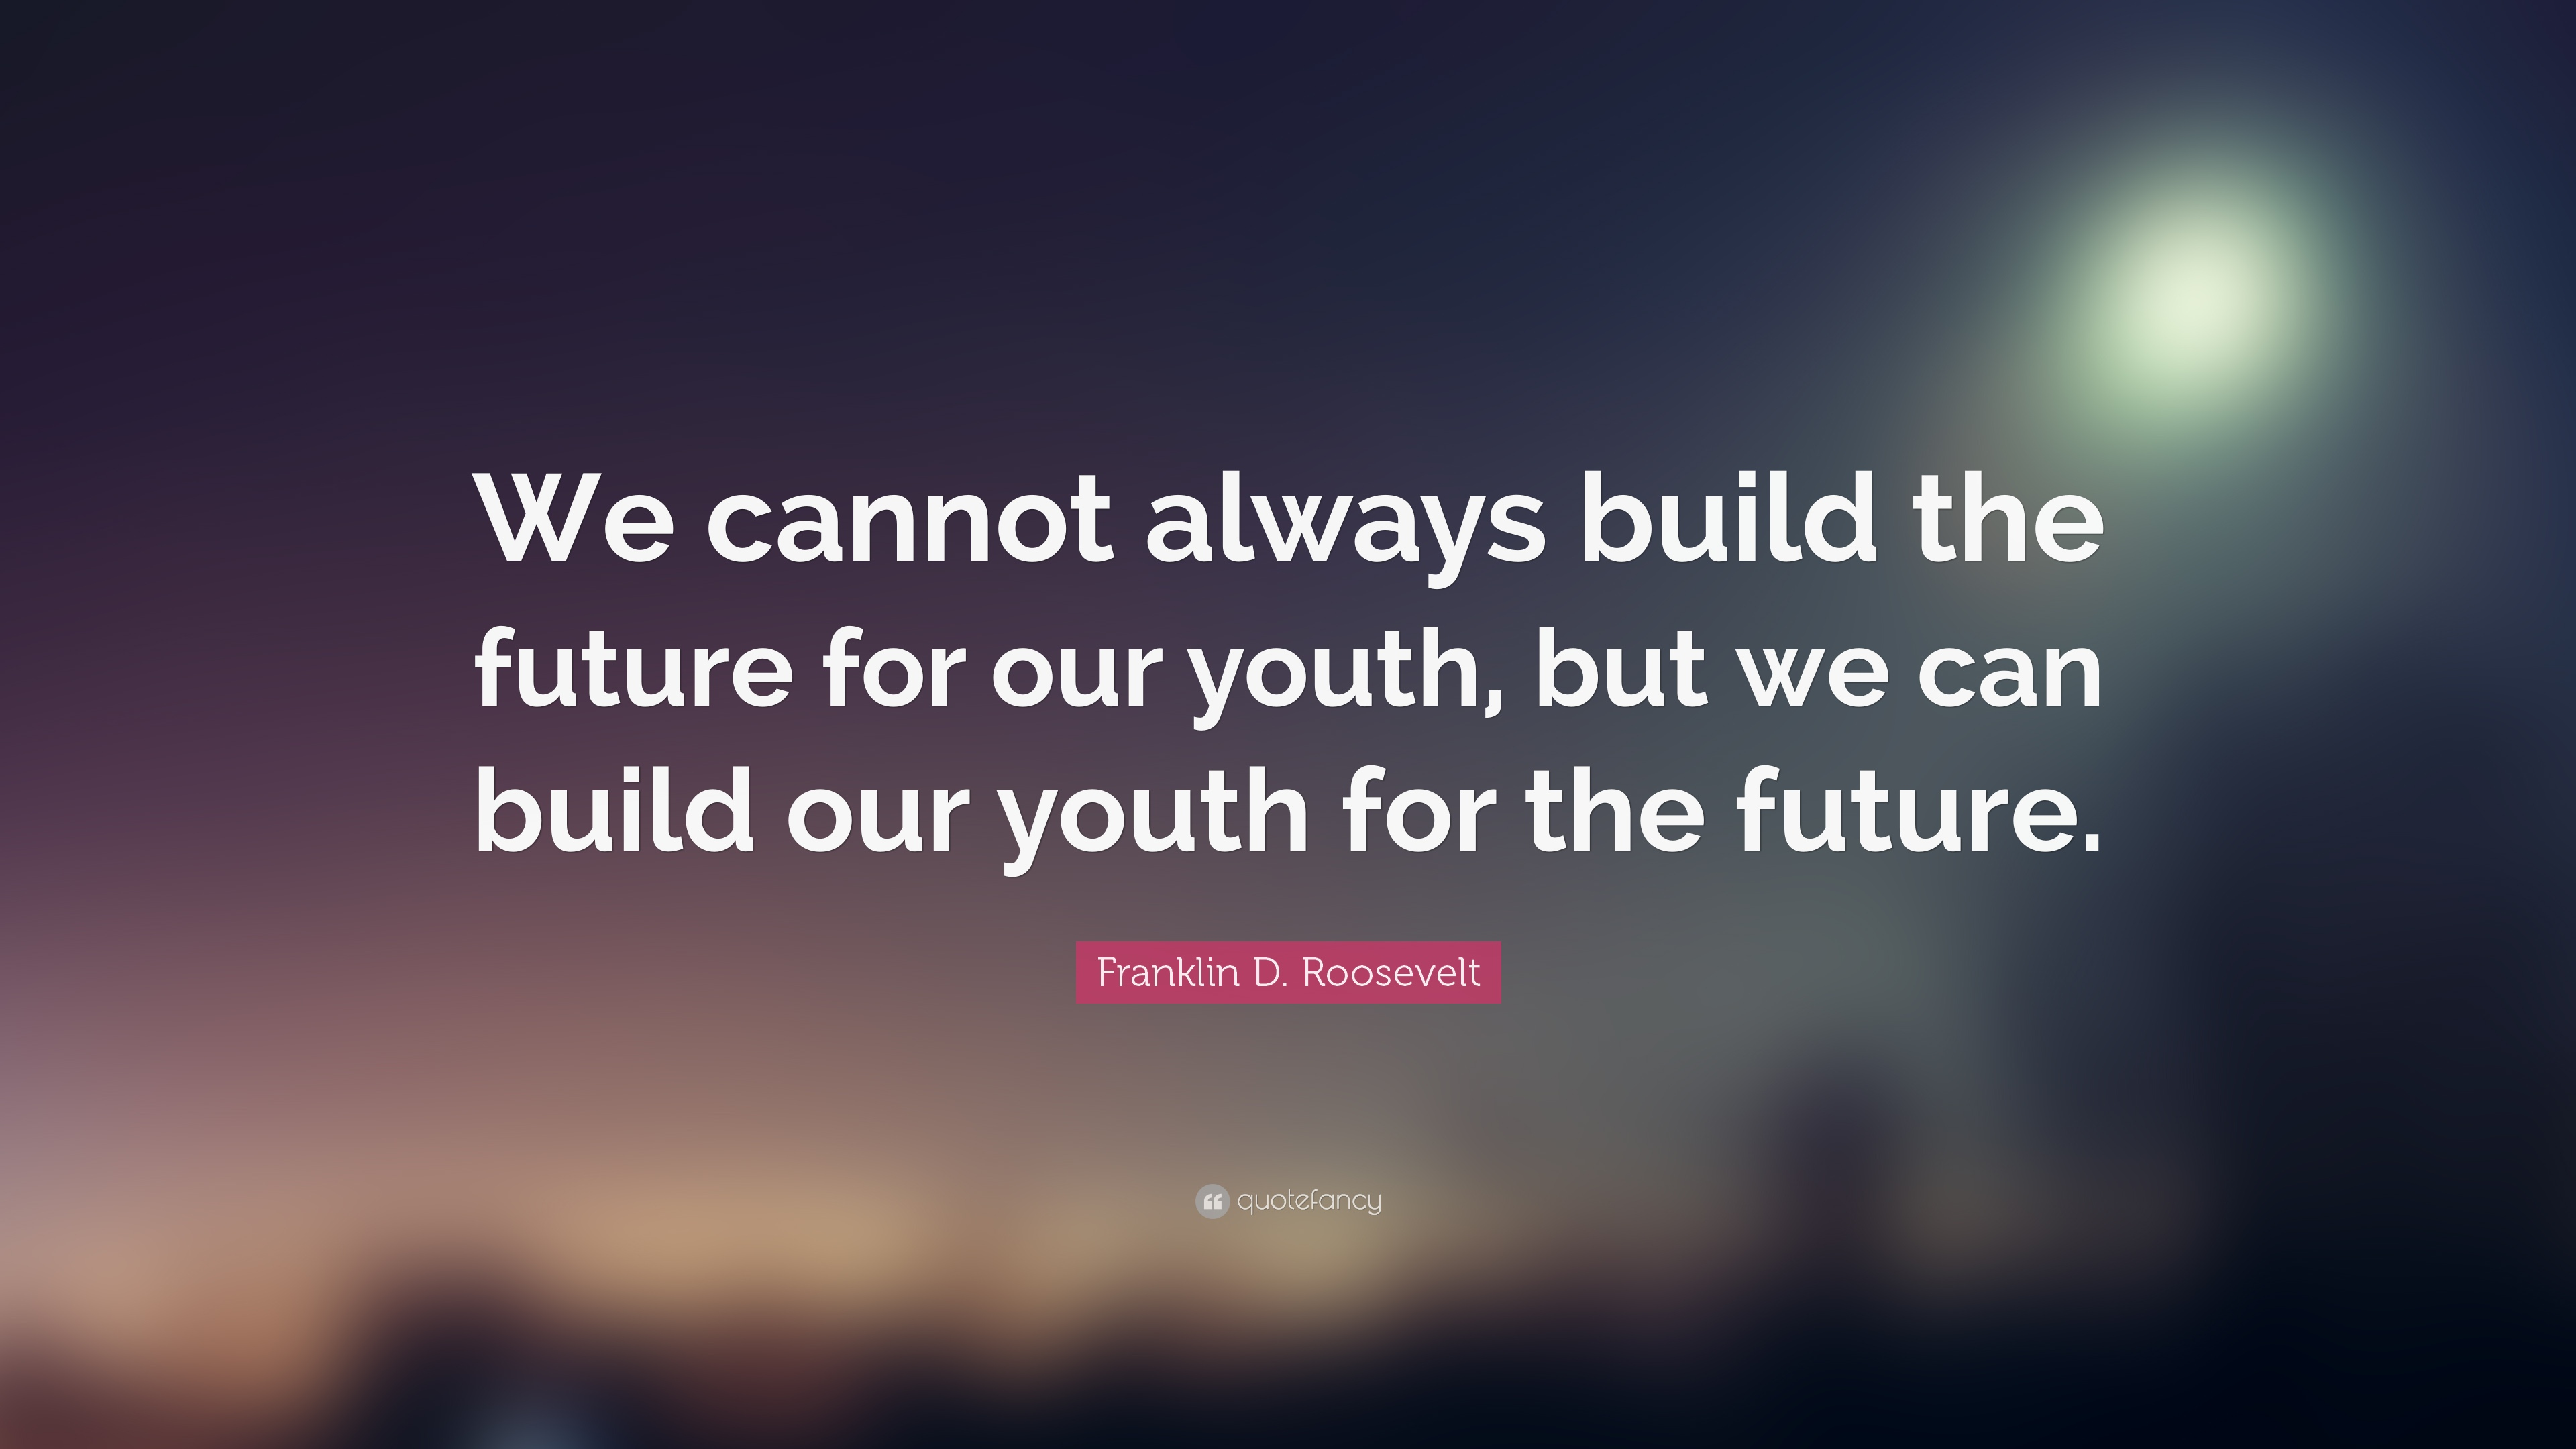 The Youth Are Our Future Hope Quotes, Quotations & Sayings 2018